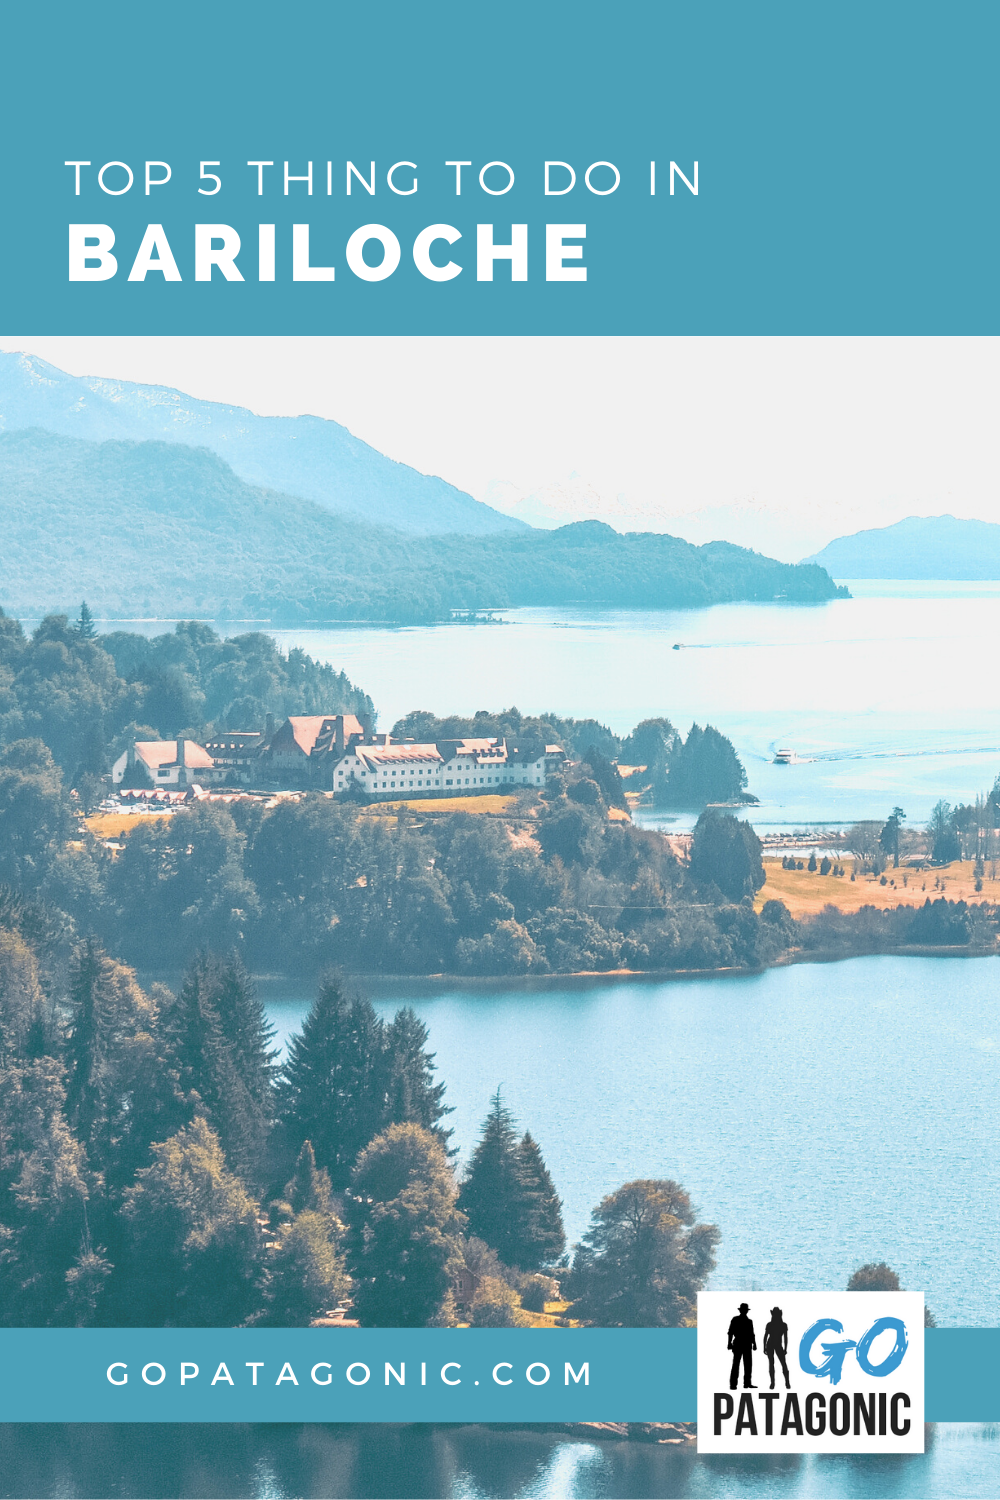 Top 5 things to do in Bariloche